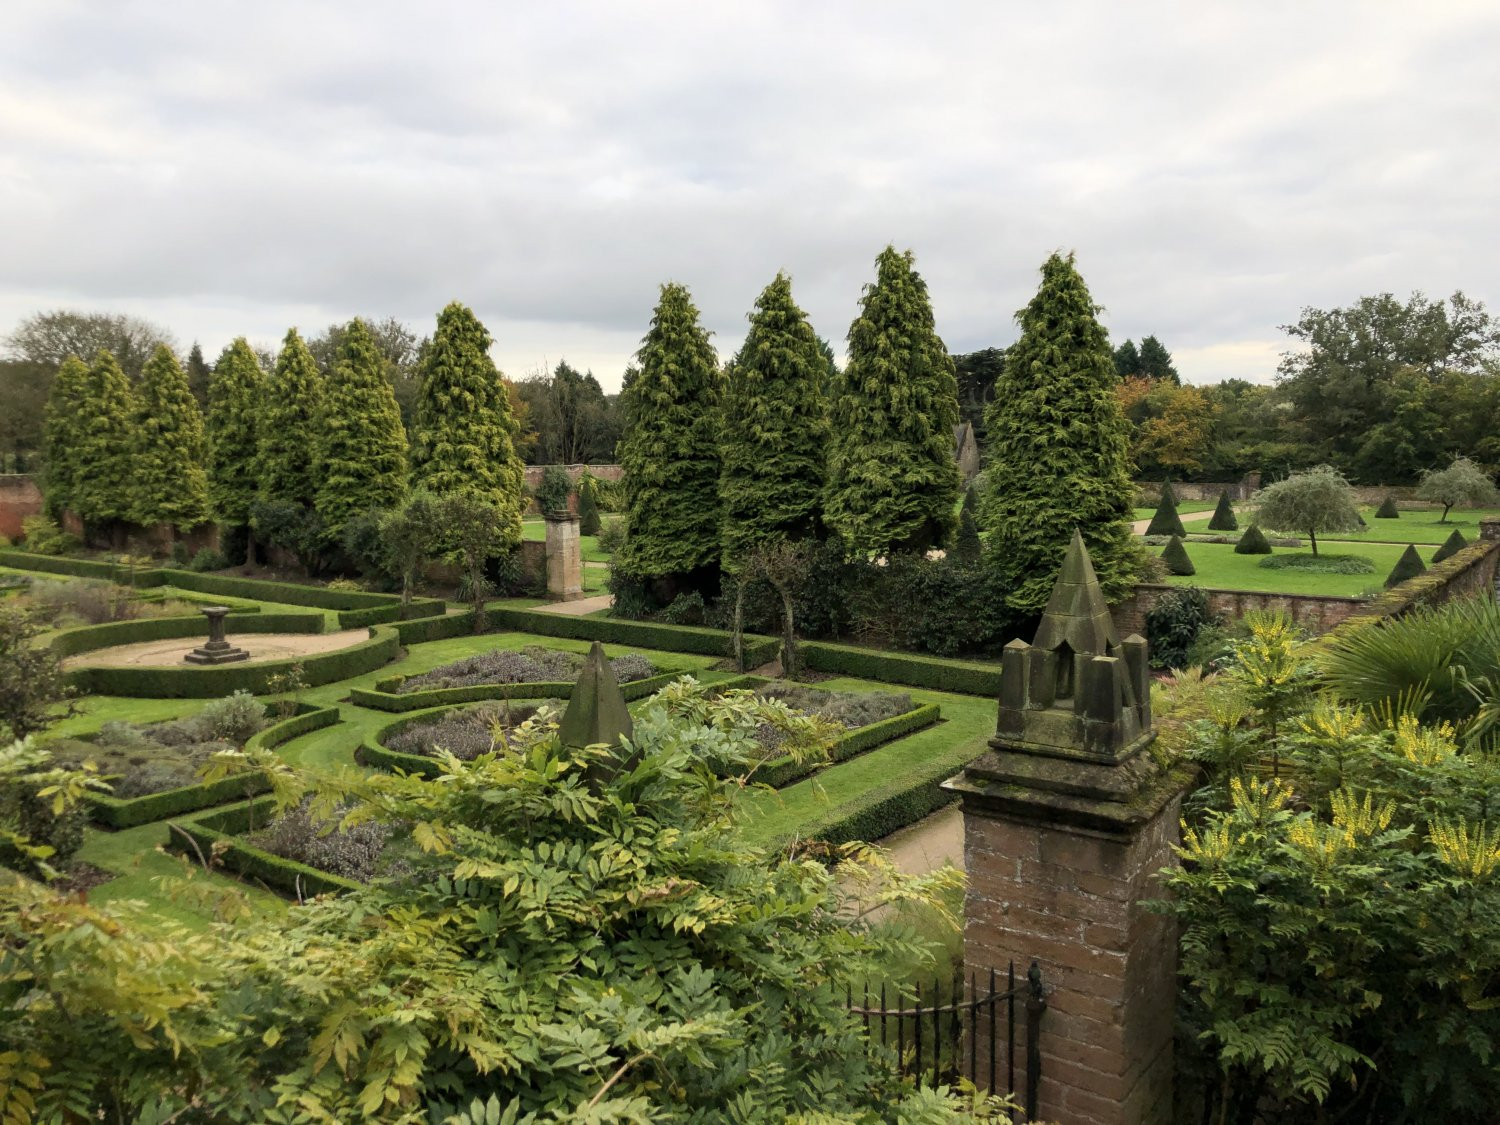 The Small Walled Garden Buxus Parterre & the the reshaping of Cones in the Large Walled Garden over the last two years